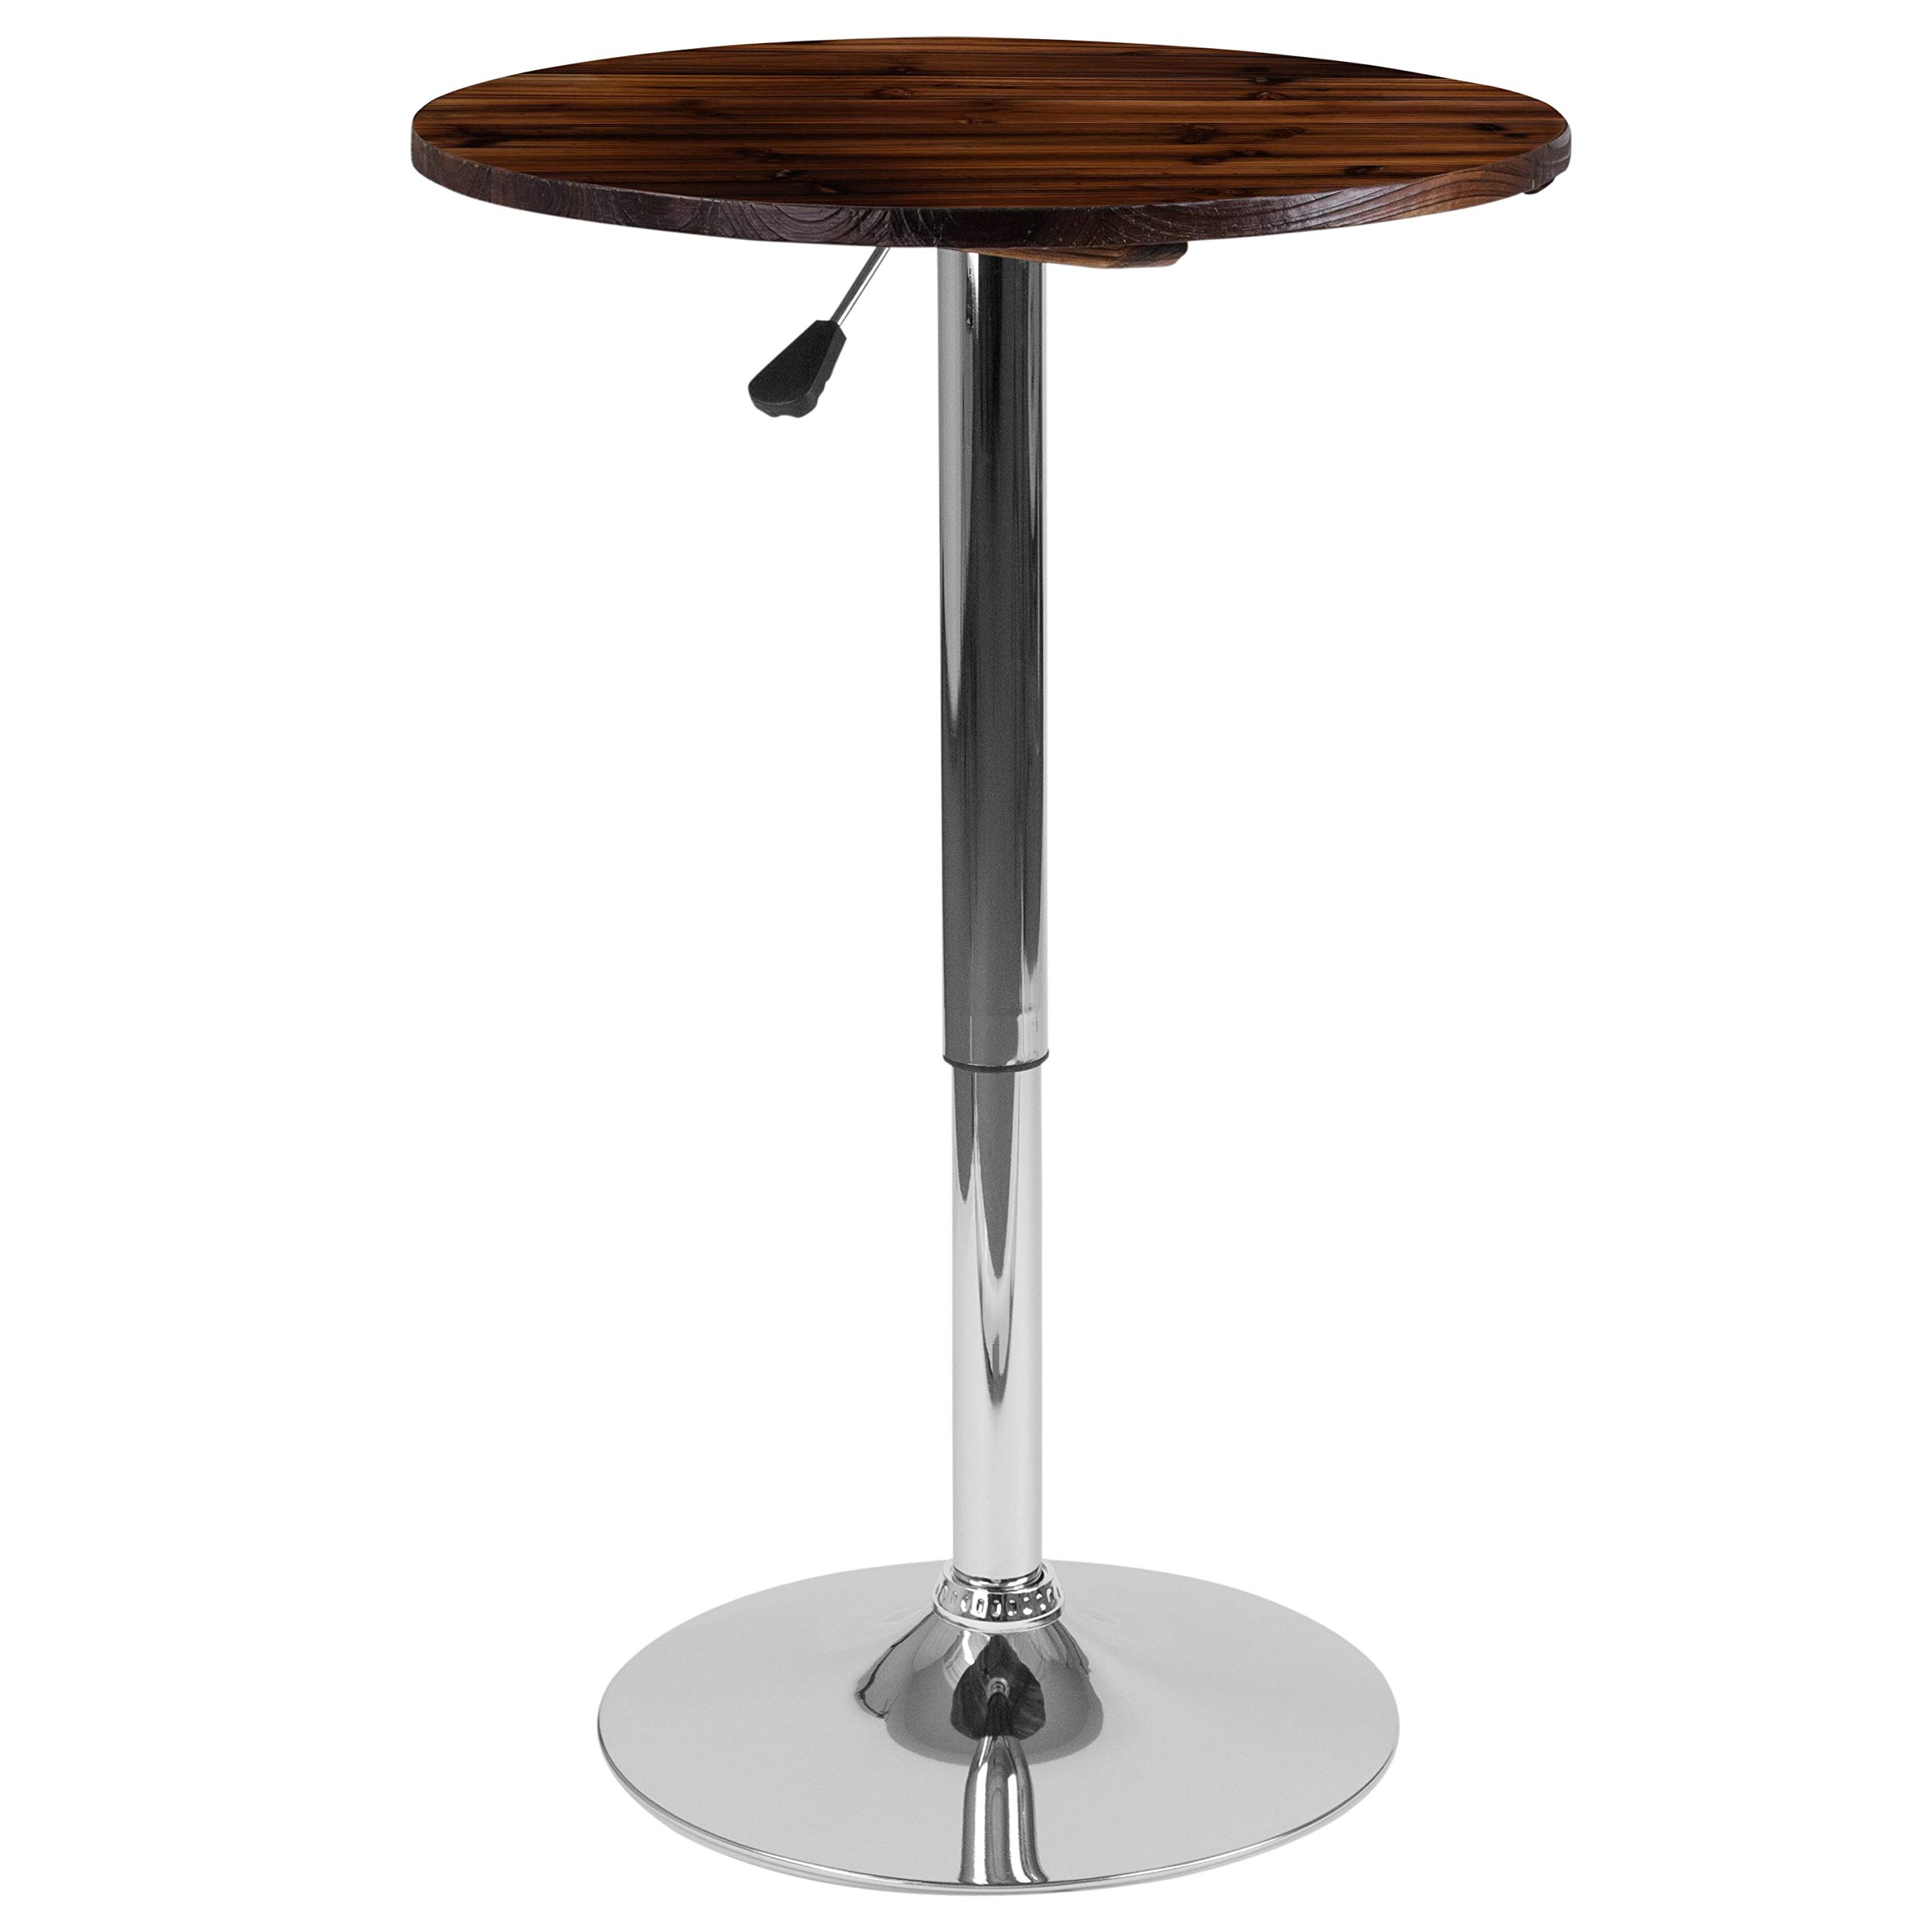 MFO 23.5'' Round Adjustable Height Rustic Pine Wood Table (Adjustable Range 26.25'' - 35.5'') by My Friendly Office